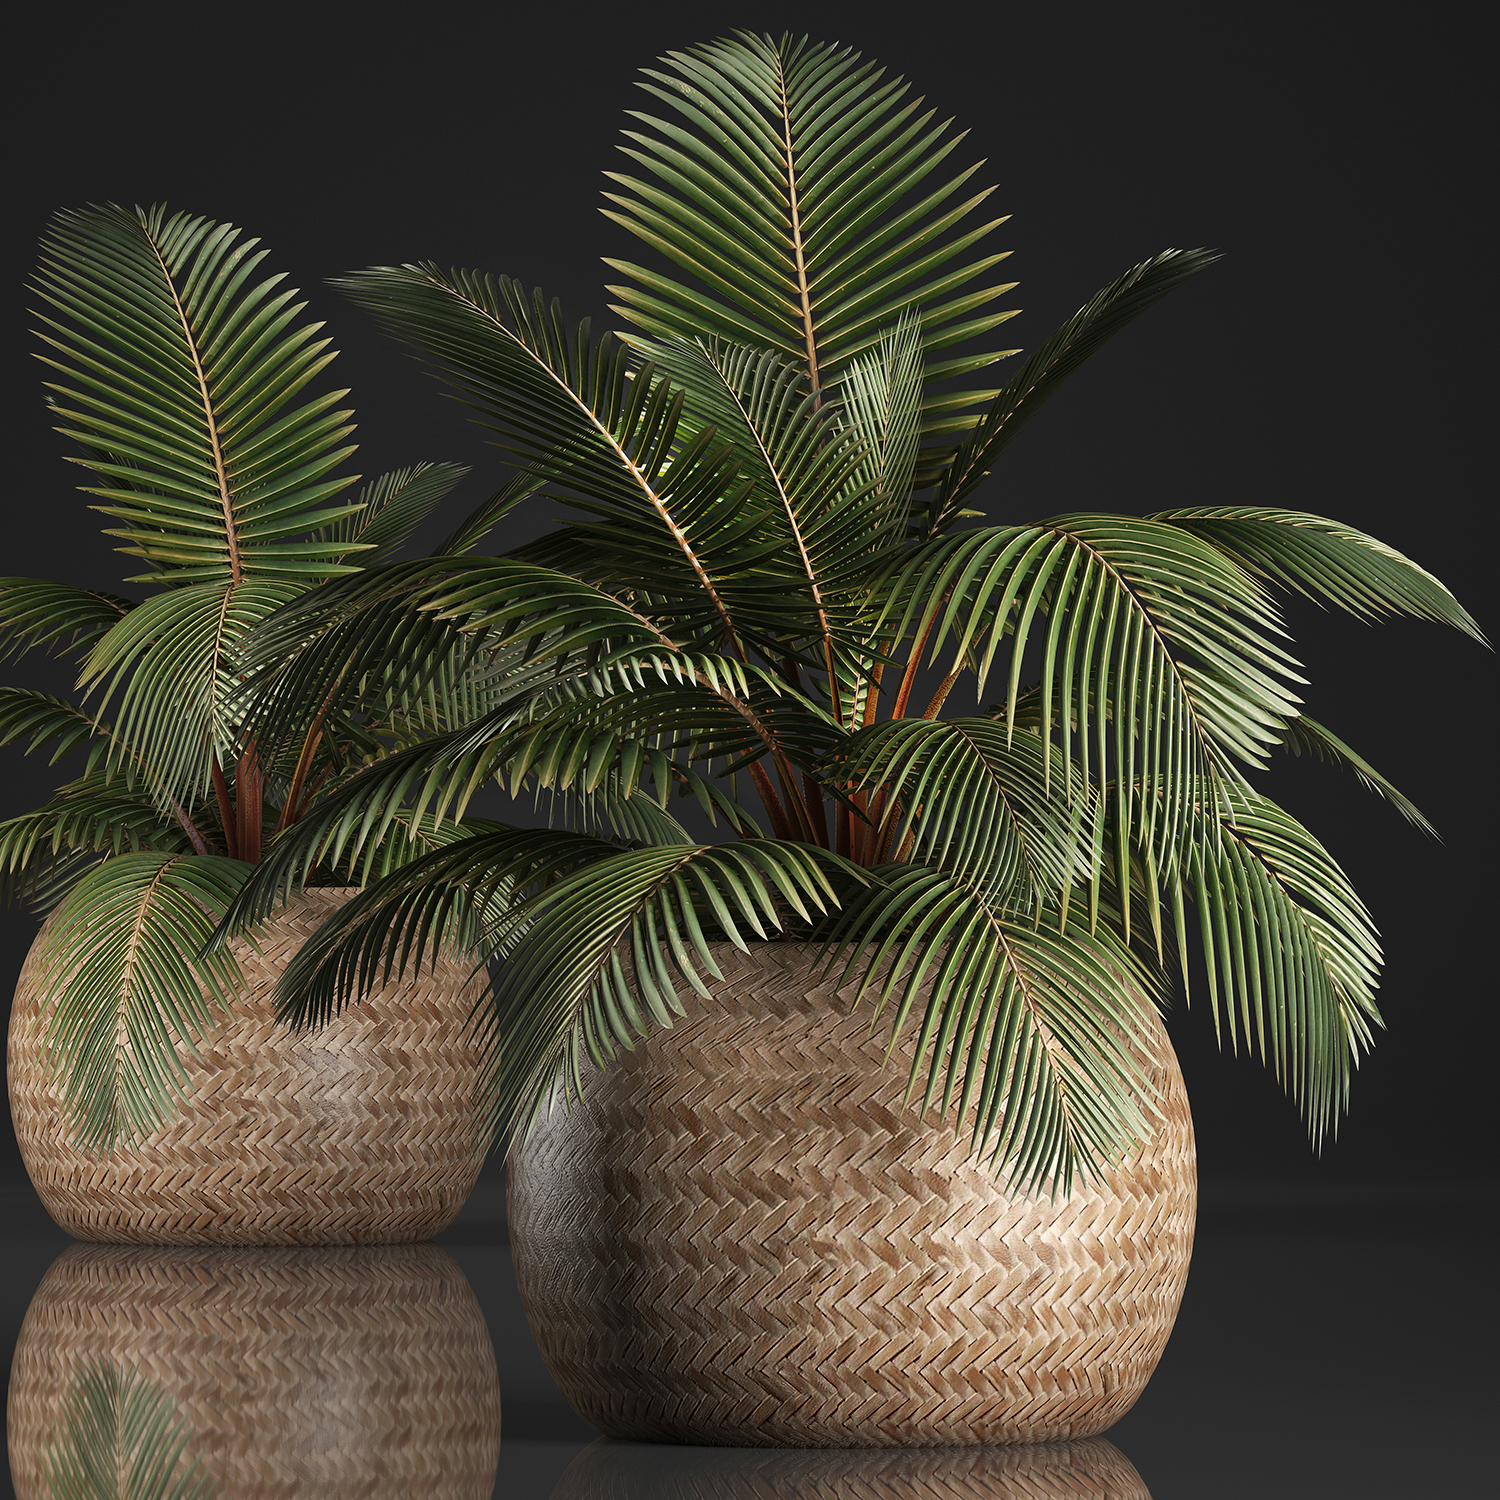 Decorative palm tree in the basket on palm leaf chickee, palm bamboo, palm pattern, palm border, palm vector, palm beetle, palm flowers, palm drawing, palm shrubs, palm bonsai, palm tr, palm seeds, palm christmas, palm shoot, palm trees, palm diagram, palm leaf cut out, palm chamaedorea seifrizii, palm roses, palm rats,